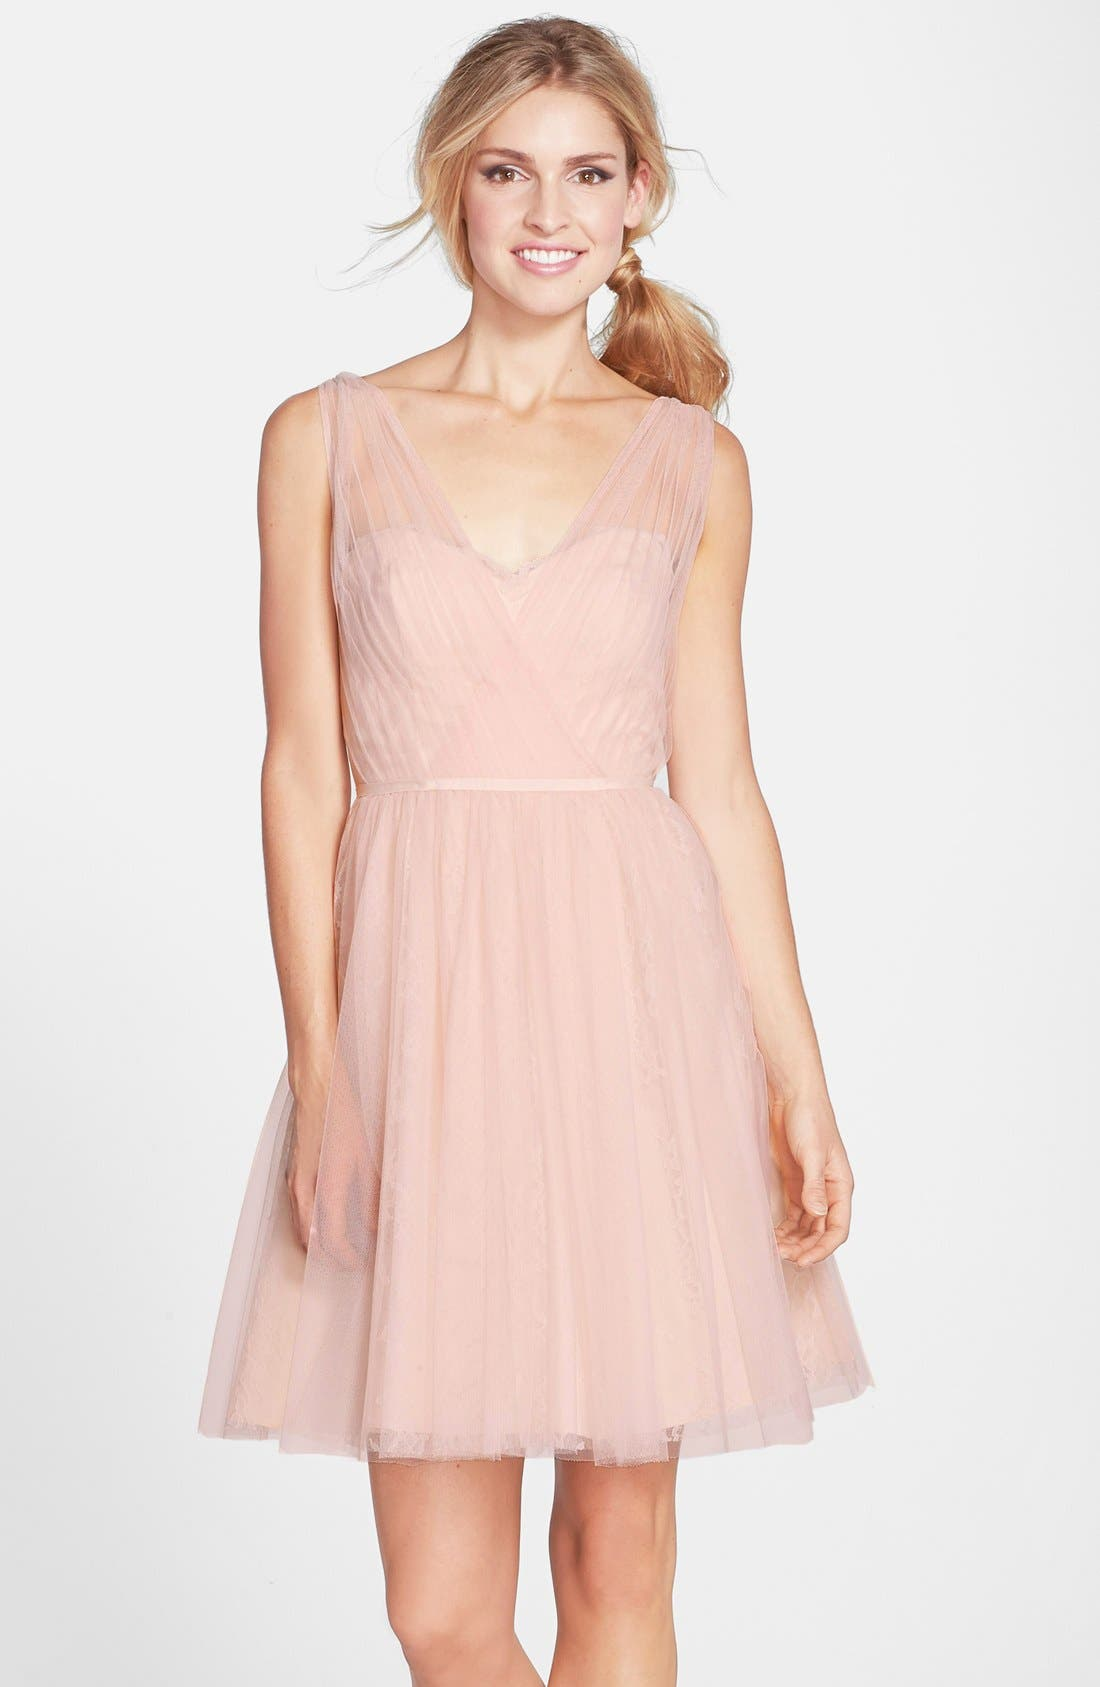 MONIQUE LHUILLIER BRIDESMAIDS Tulle Overlay Lace Fit &